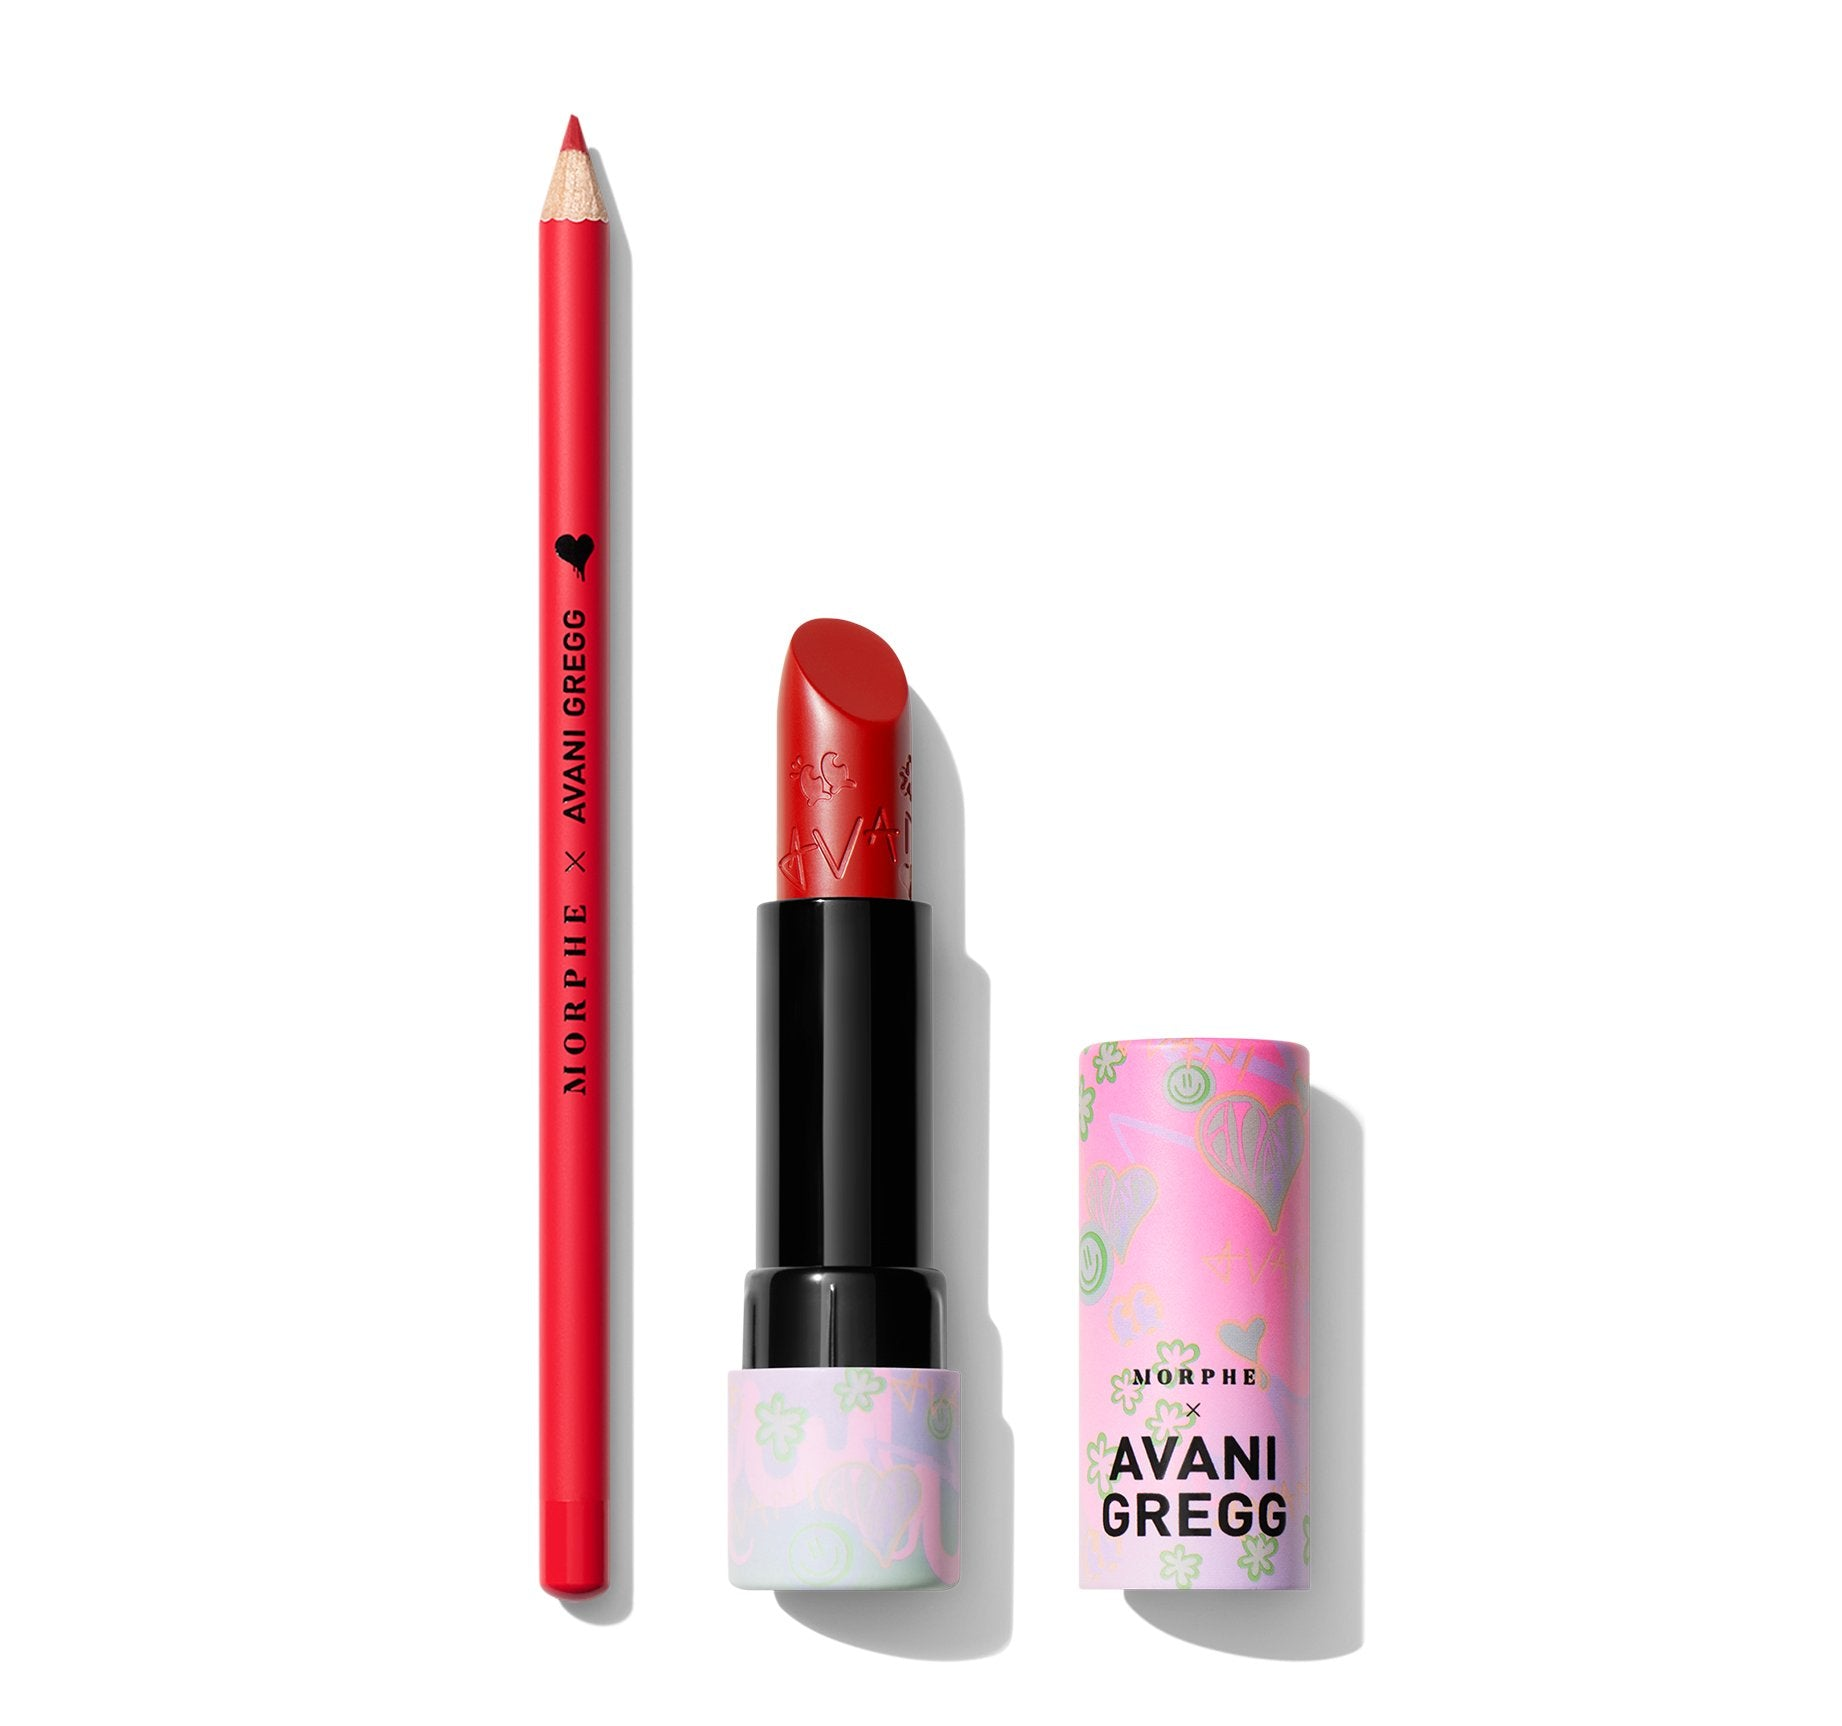 MORPHE X AVANI GREGG LOVE YOU LIP DUO, view larger image